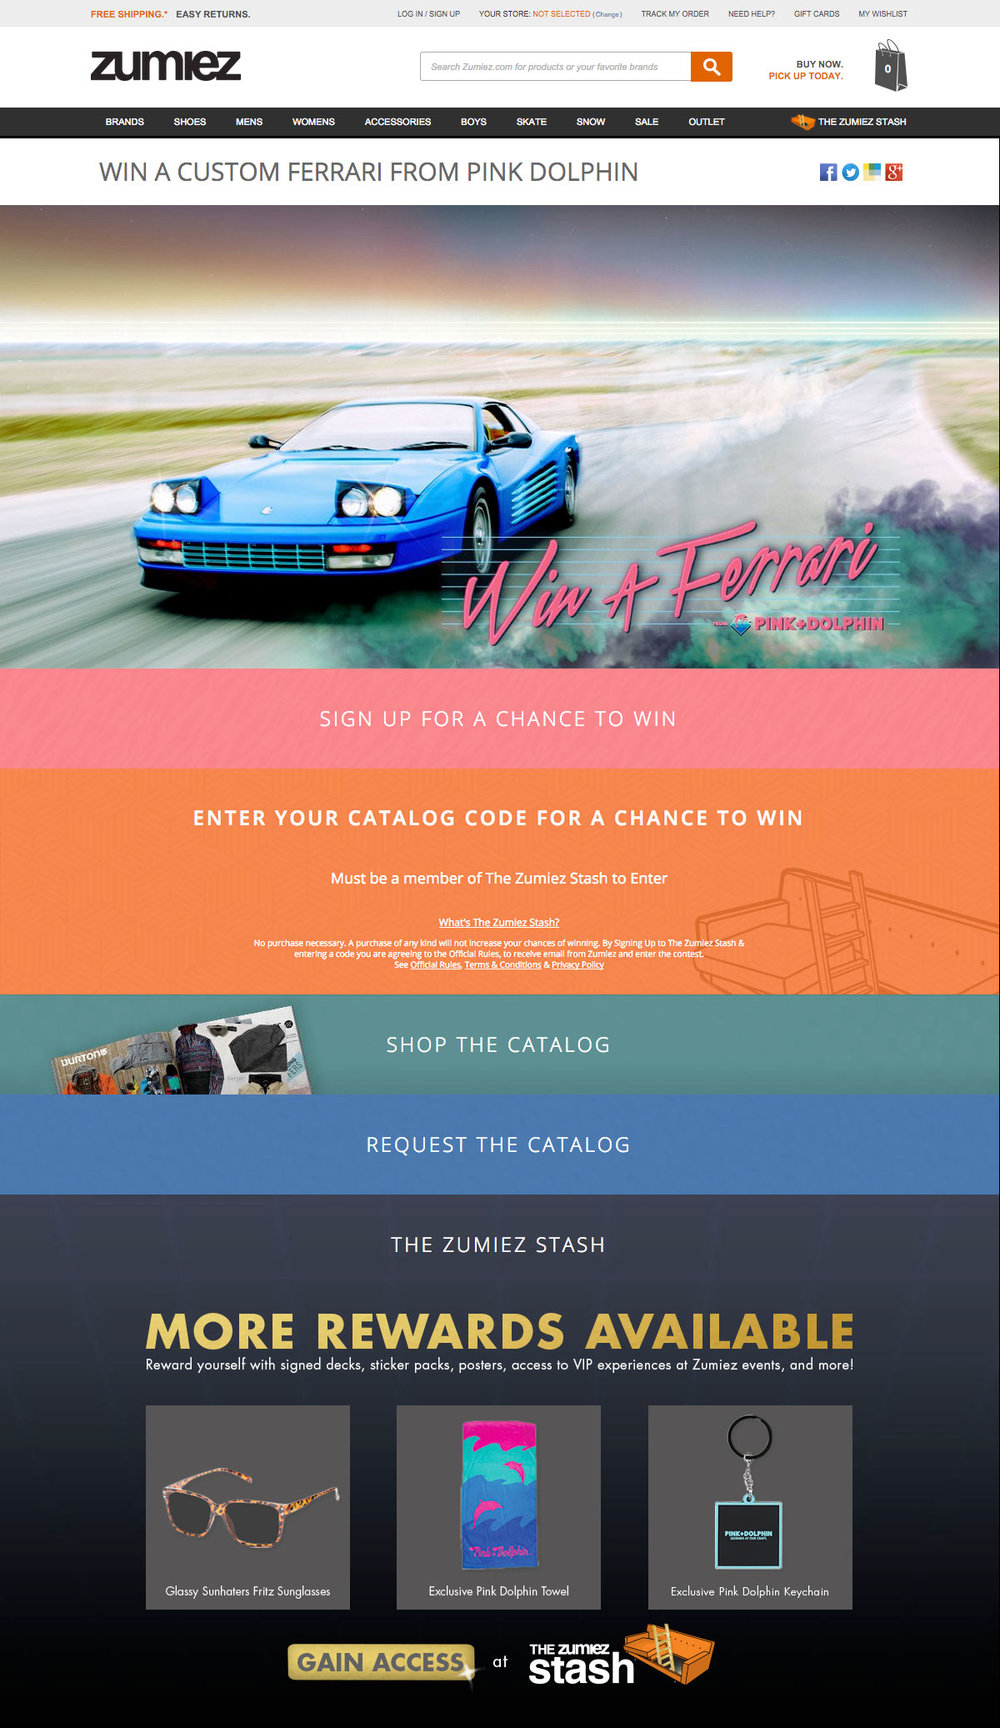 WIN-A-FERRARI-02-Enter.jpg